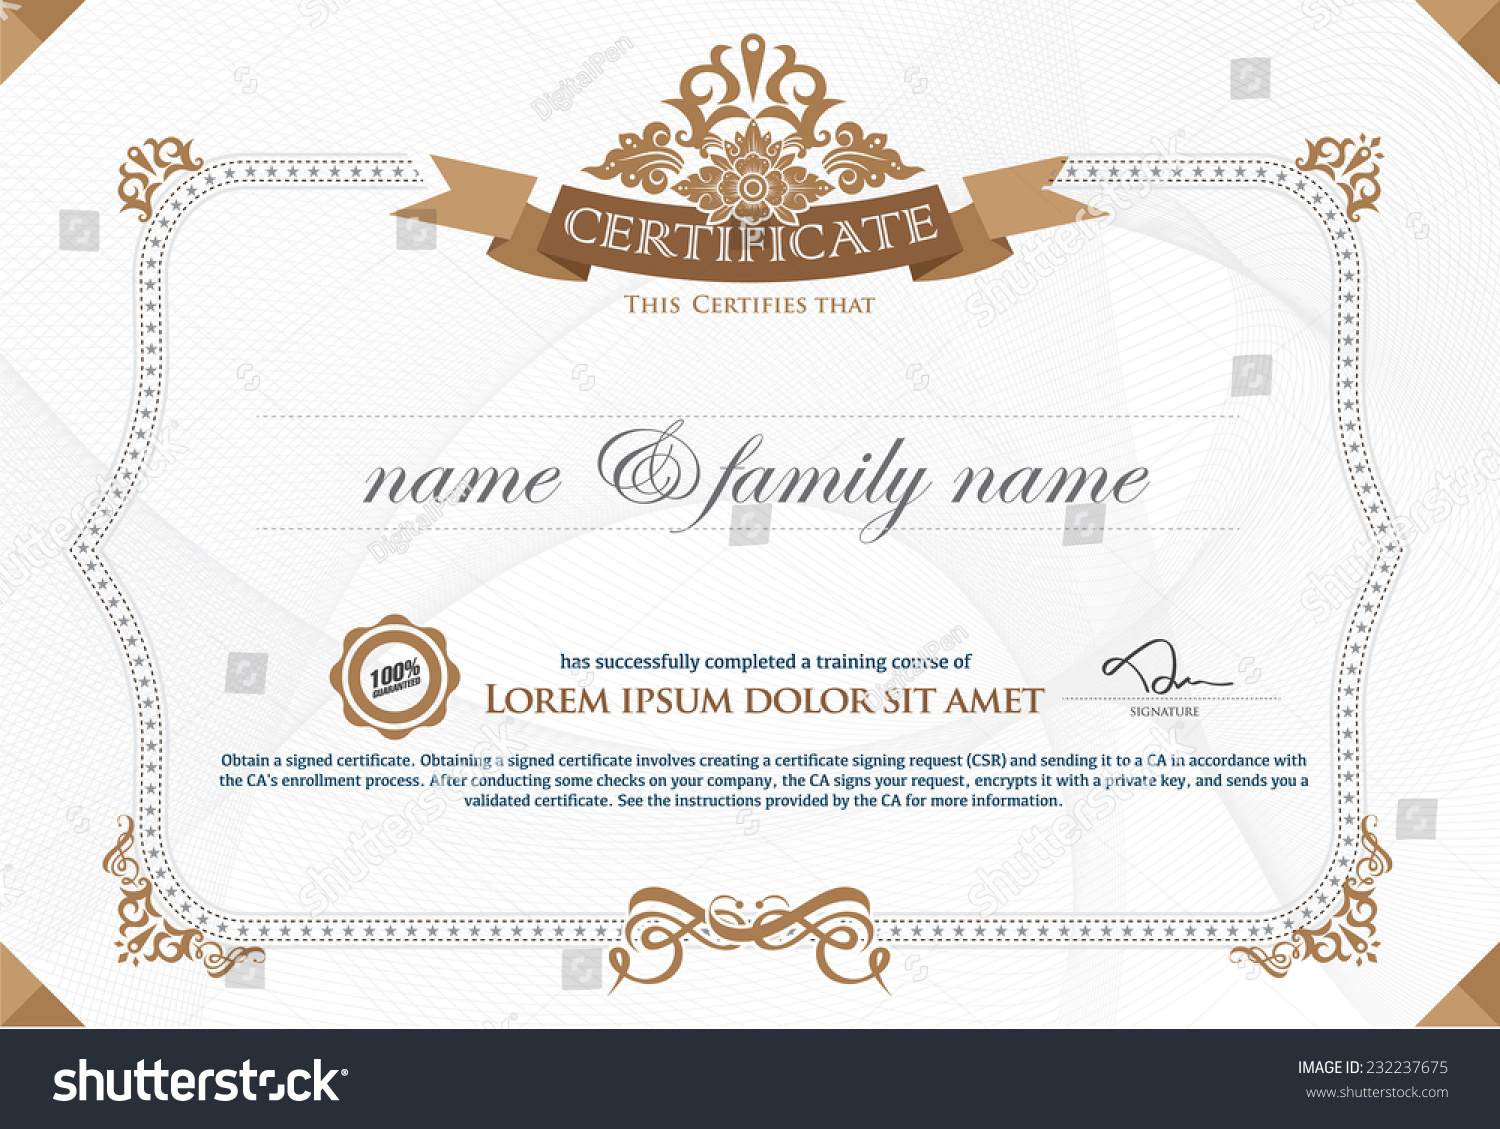 Royalty free gold horizontal certificate template 232237675 gold horizontal certificate template with additional design elements premium vip certificate vector illustration of gold 1betcityfo Gallery